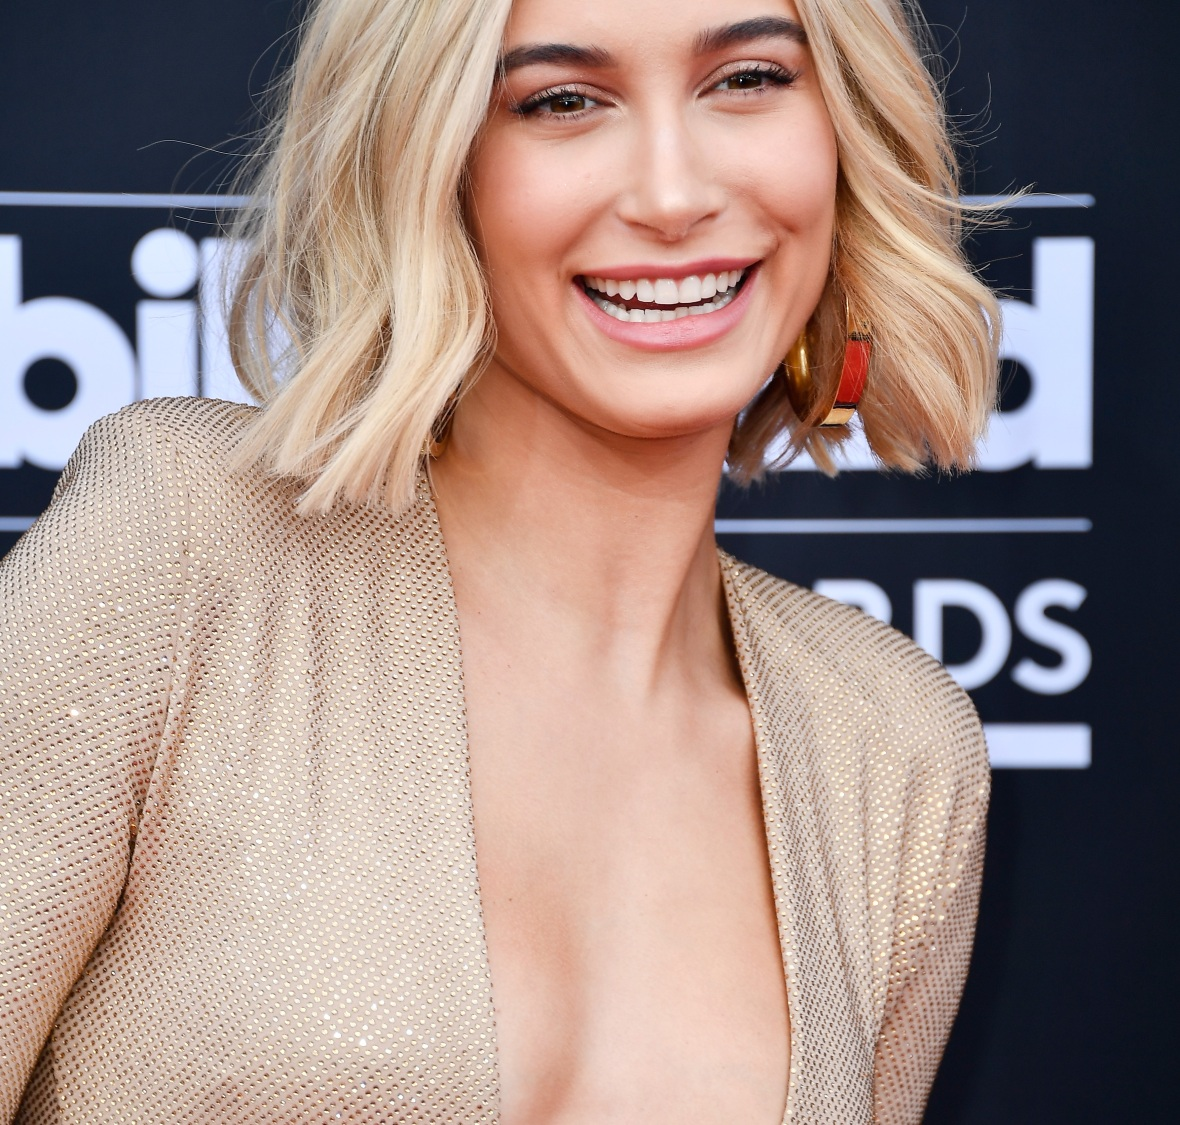 hailey baldwin getty images